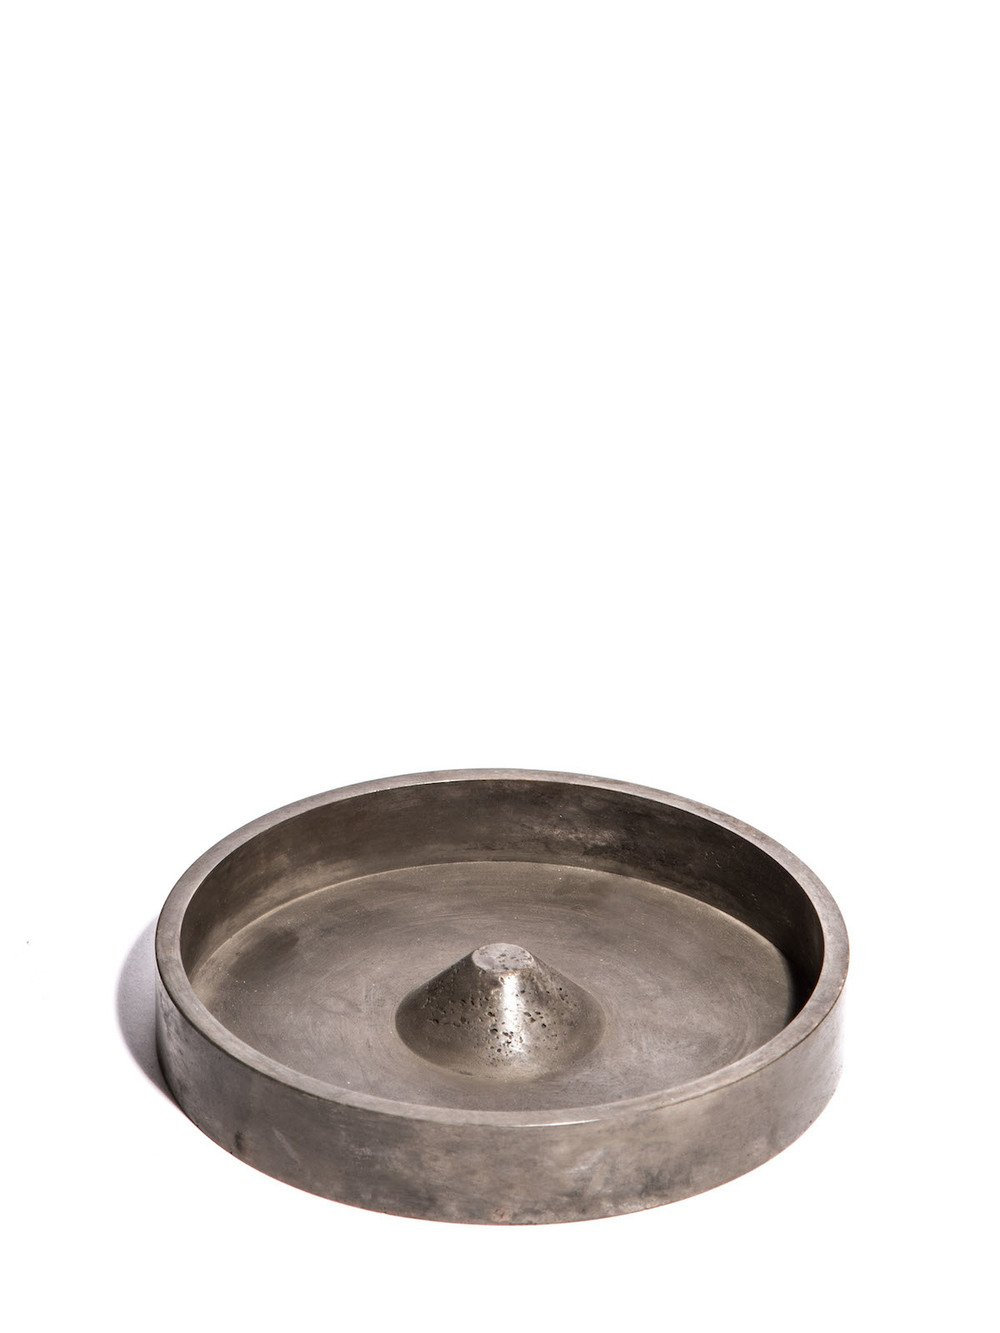 RICK OWENS ASHTRAY